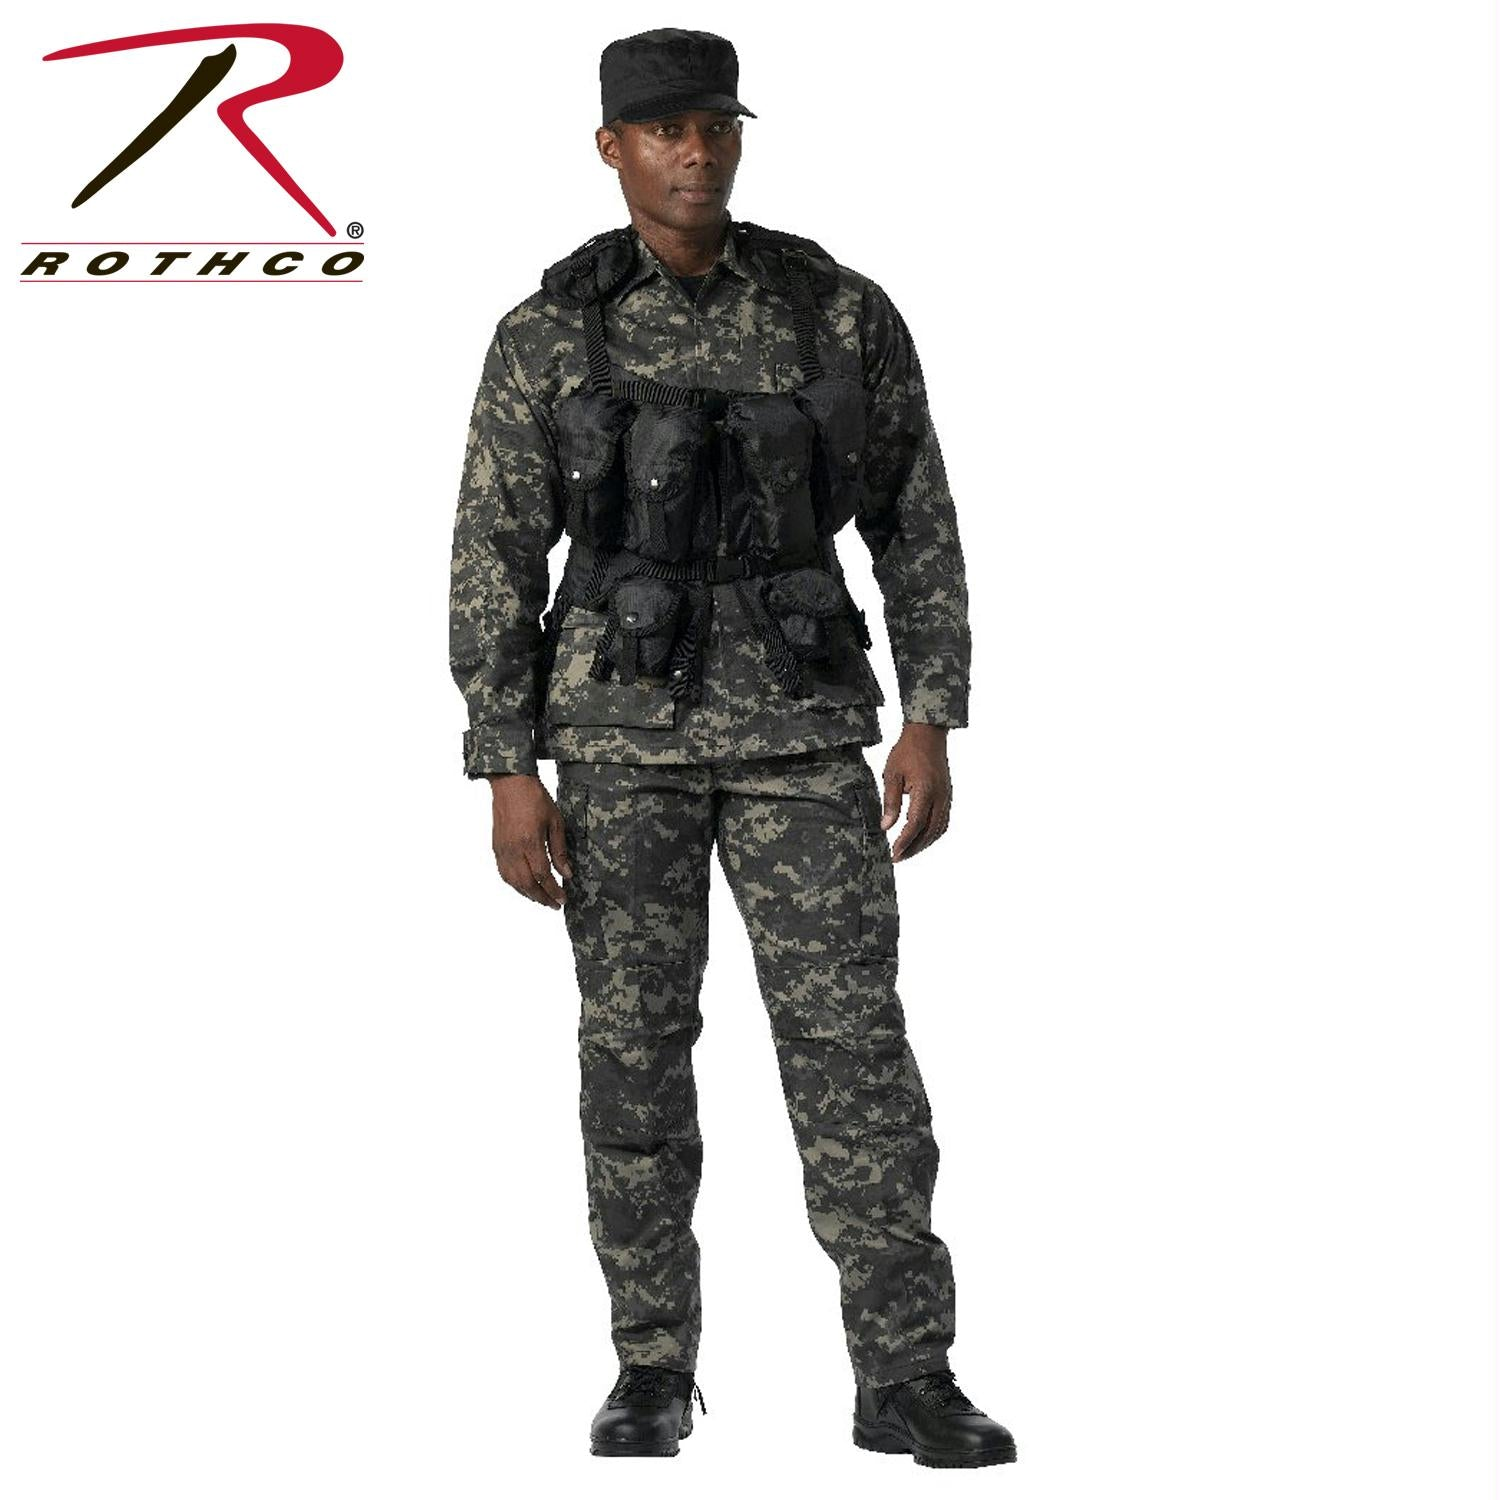 Rothco Tactical Assault Vest - Black